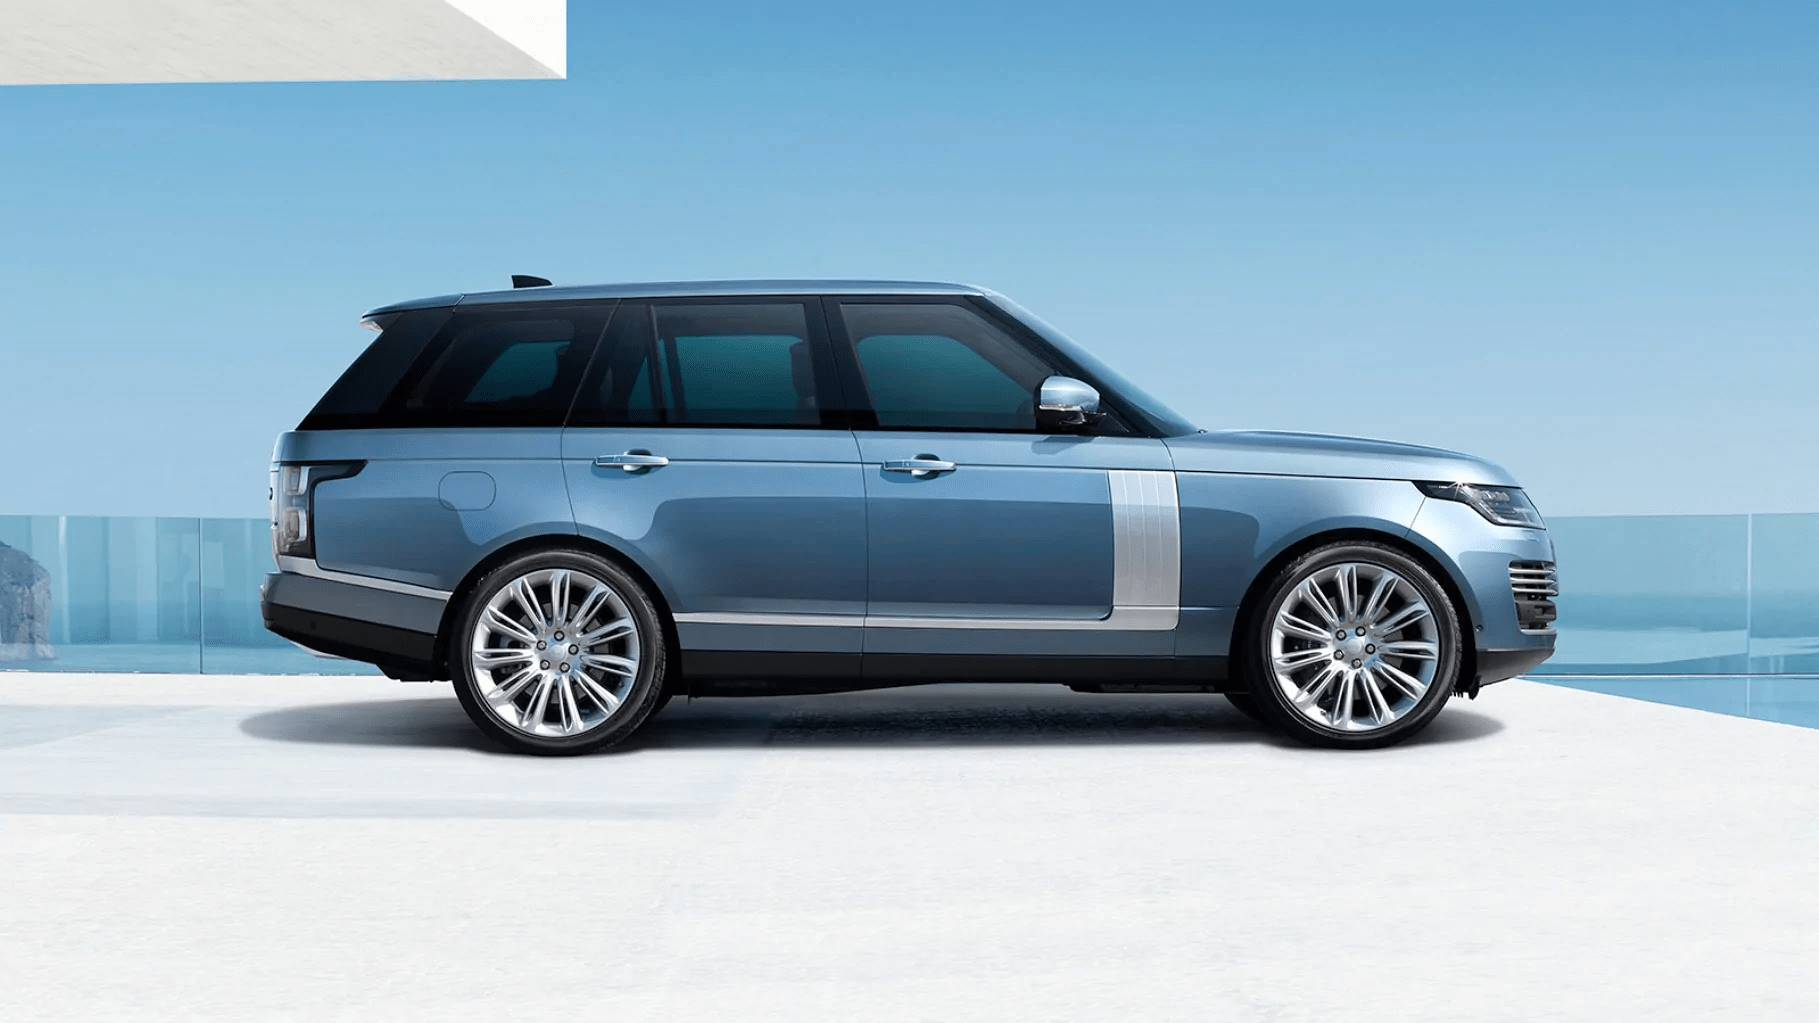 rover range land models v8 supercharged colors l405 sport hp landrover byron much 0i cost exterior grey exhaust vogue harga